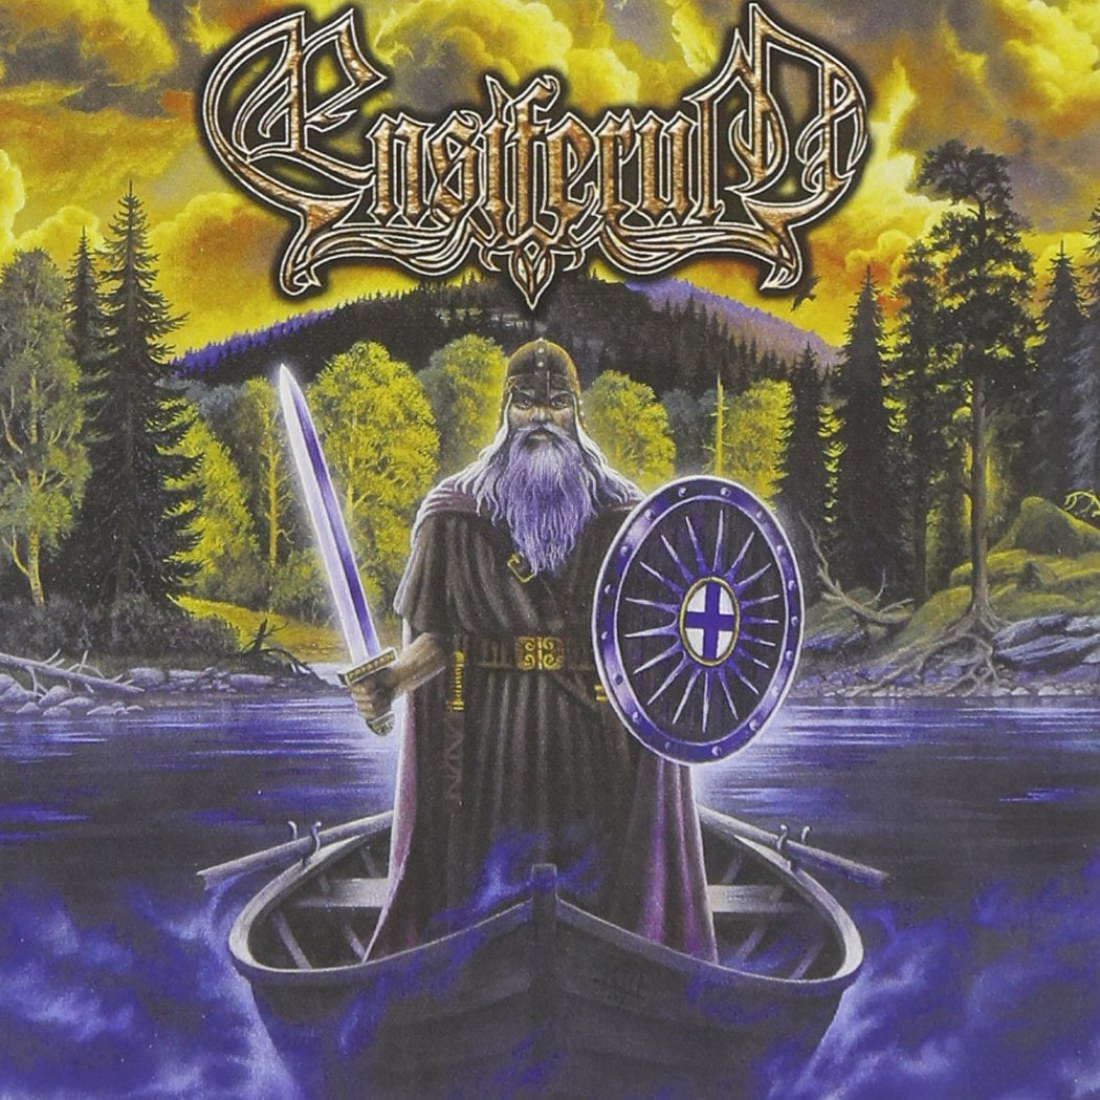 Review for Ensiferum - Ensiferum